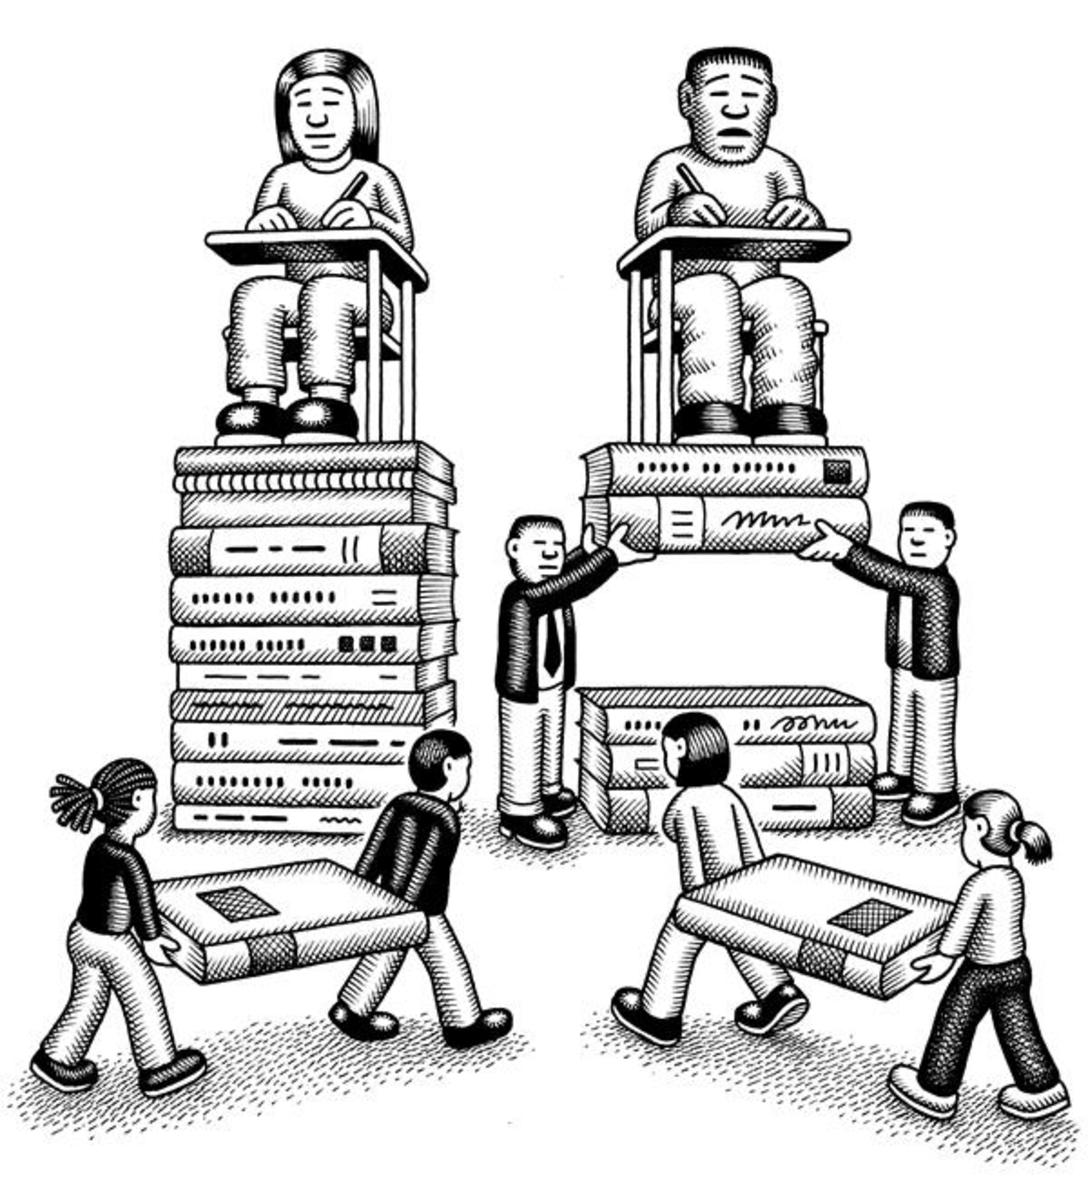 closing-achievement-gaps-as-an-accountable-leader-the-acknowledgment-gap